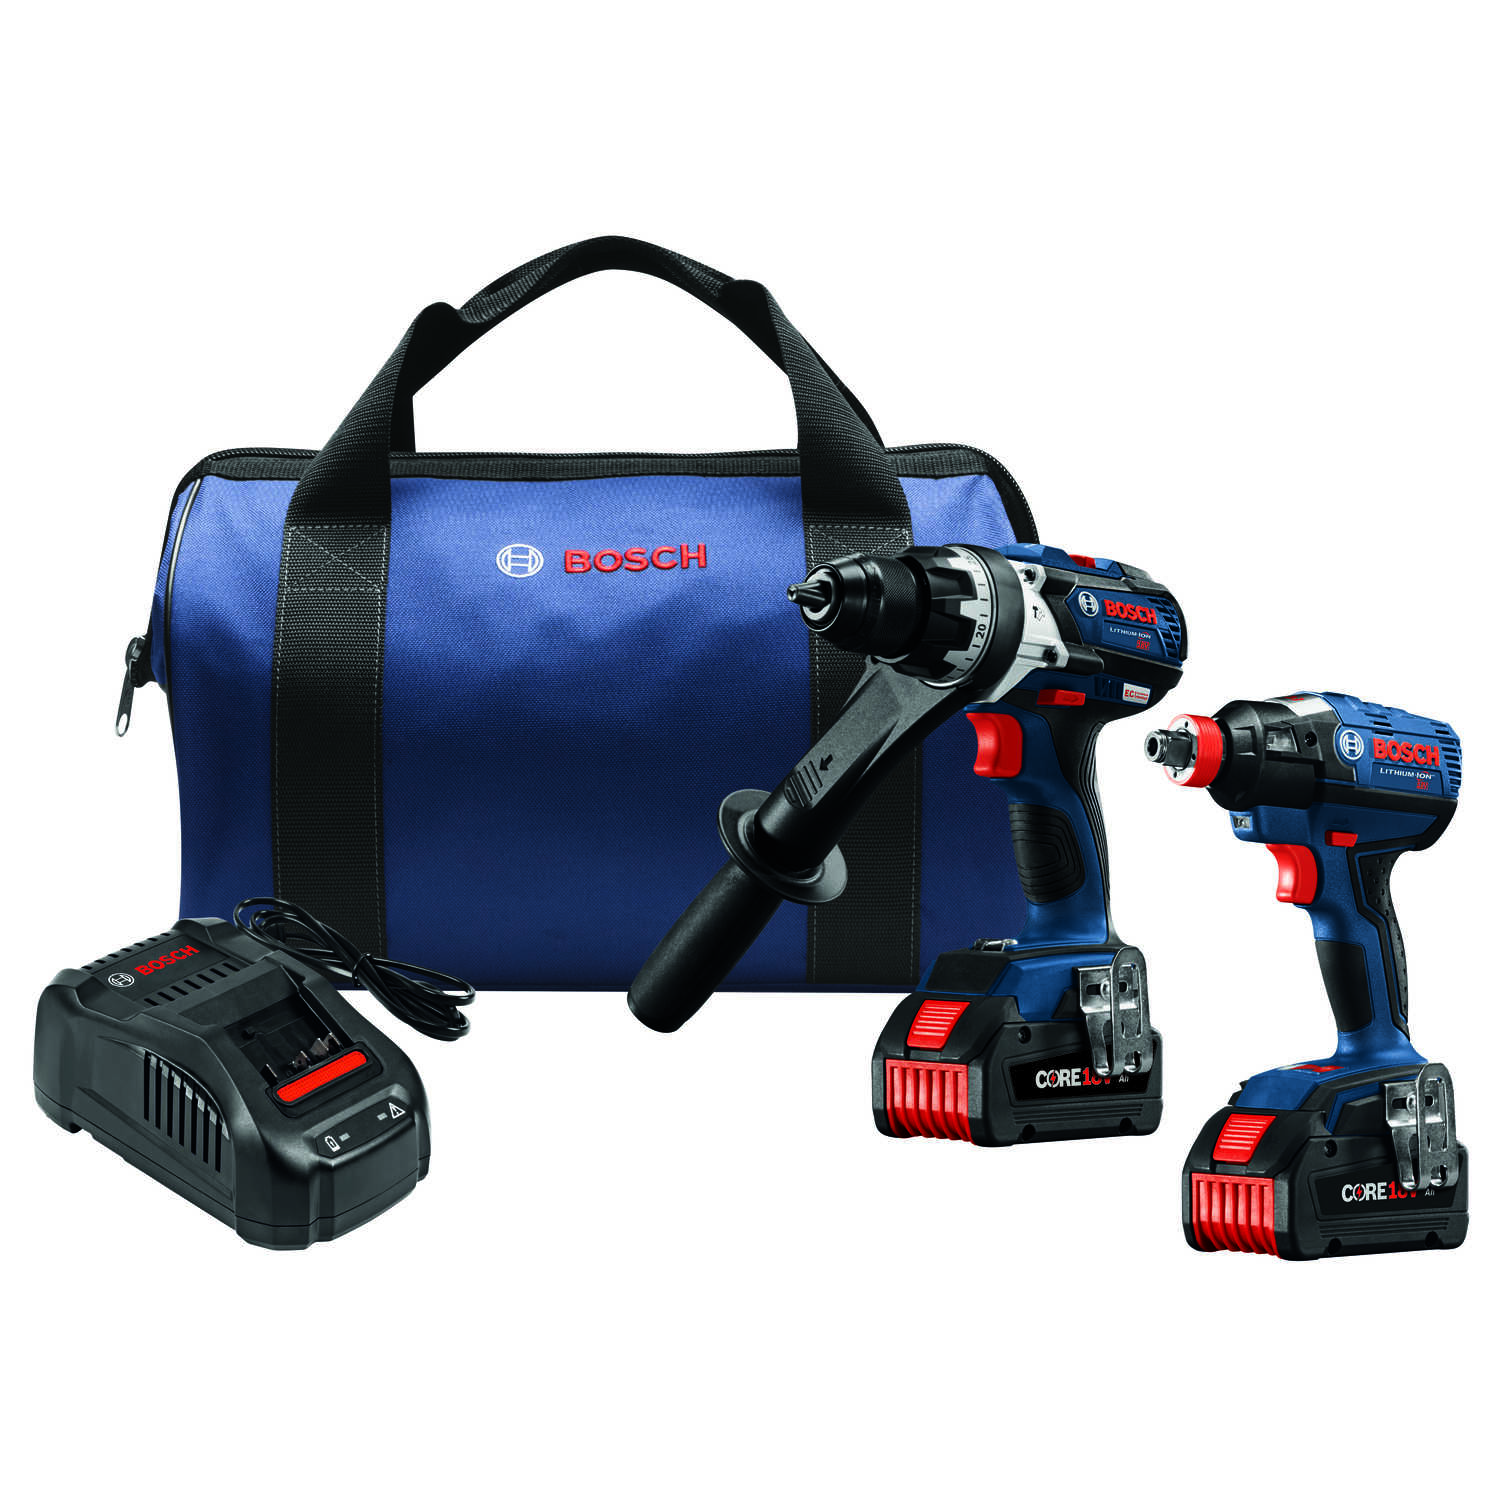 Bosch  Cordless  Brushless 2 tool Hammer Drill and Impact Driver Kit  18 volt